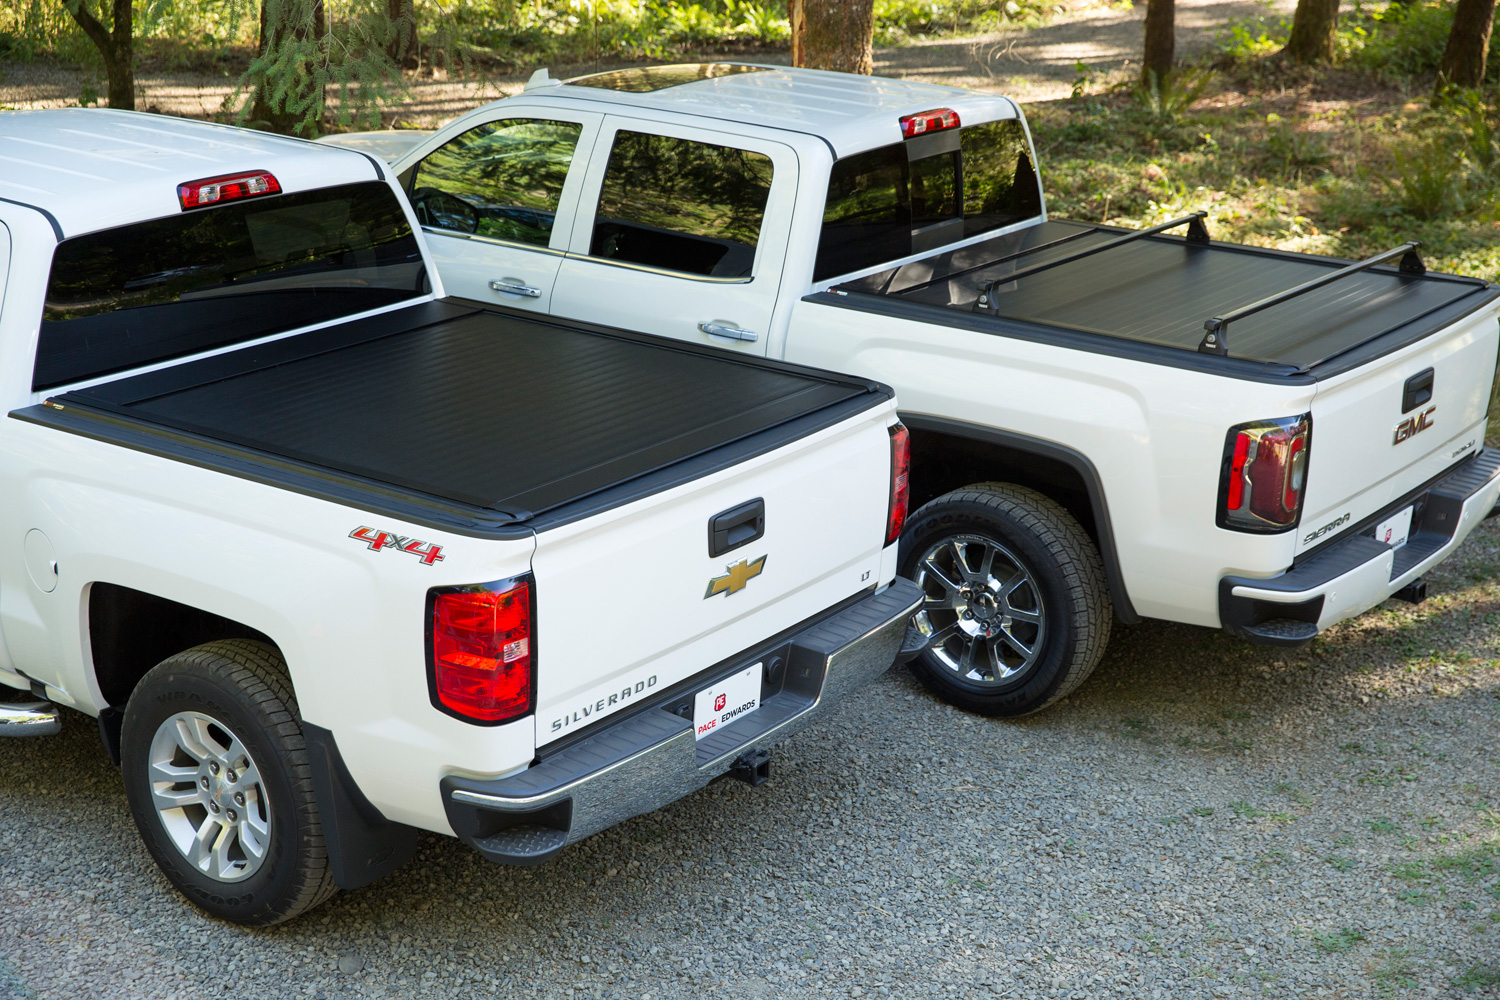 pace-edwards ultragroove metal tonneau cover - ships free